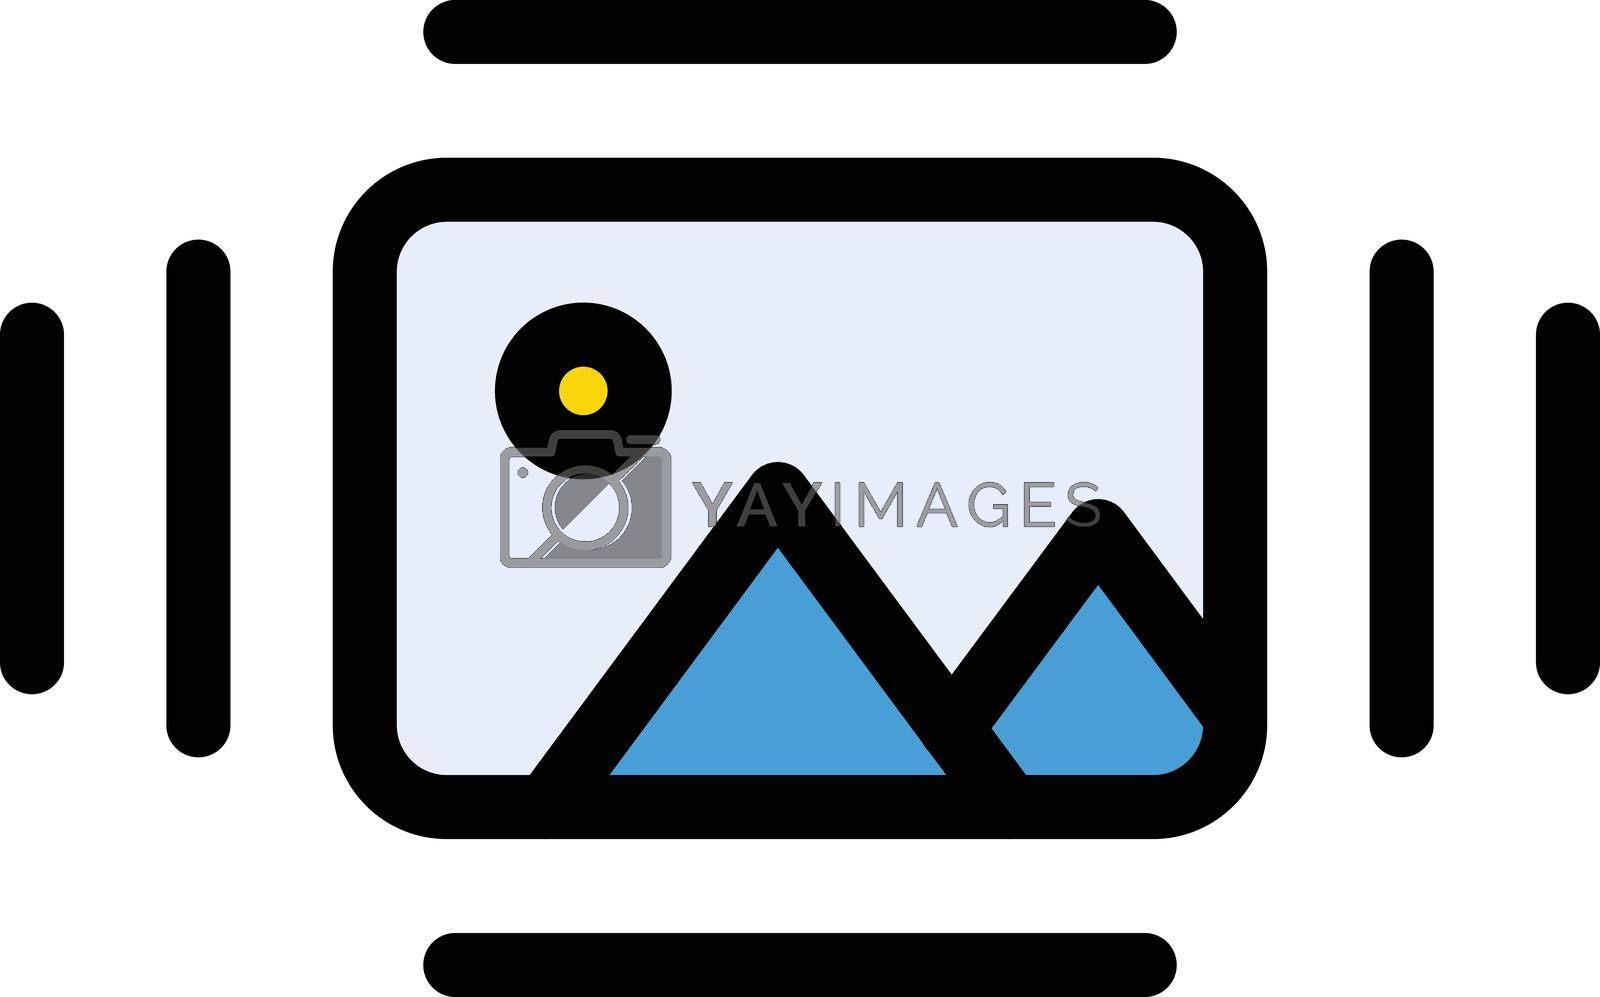 Royalty free image of picture by vectorstall